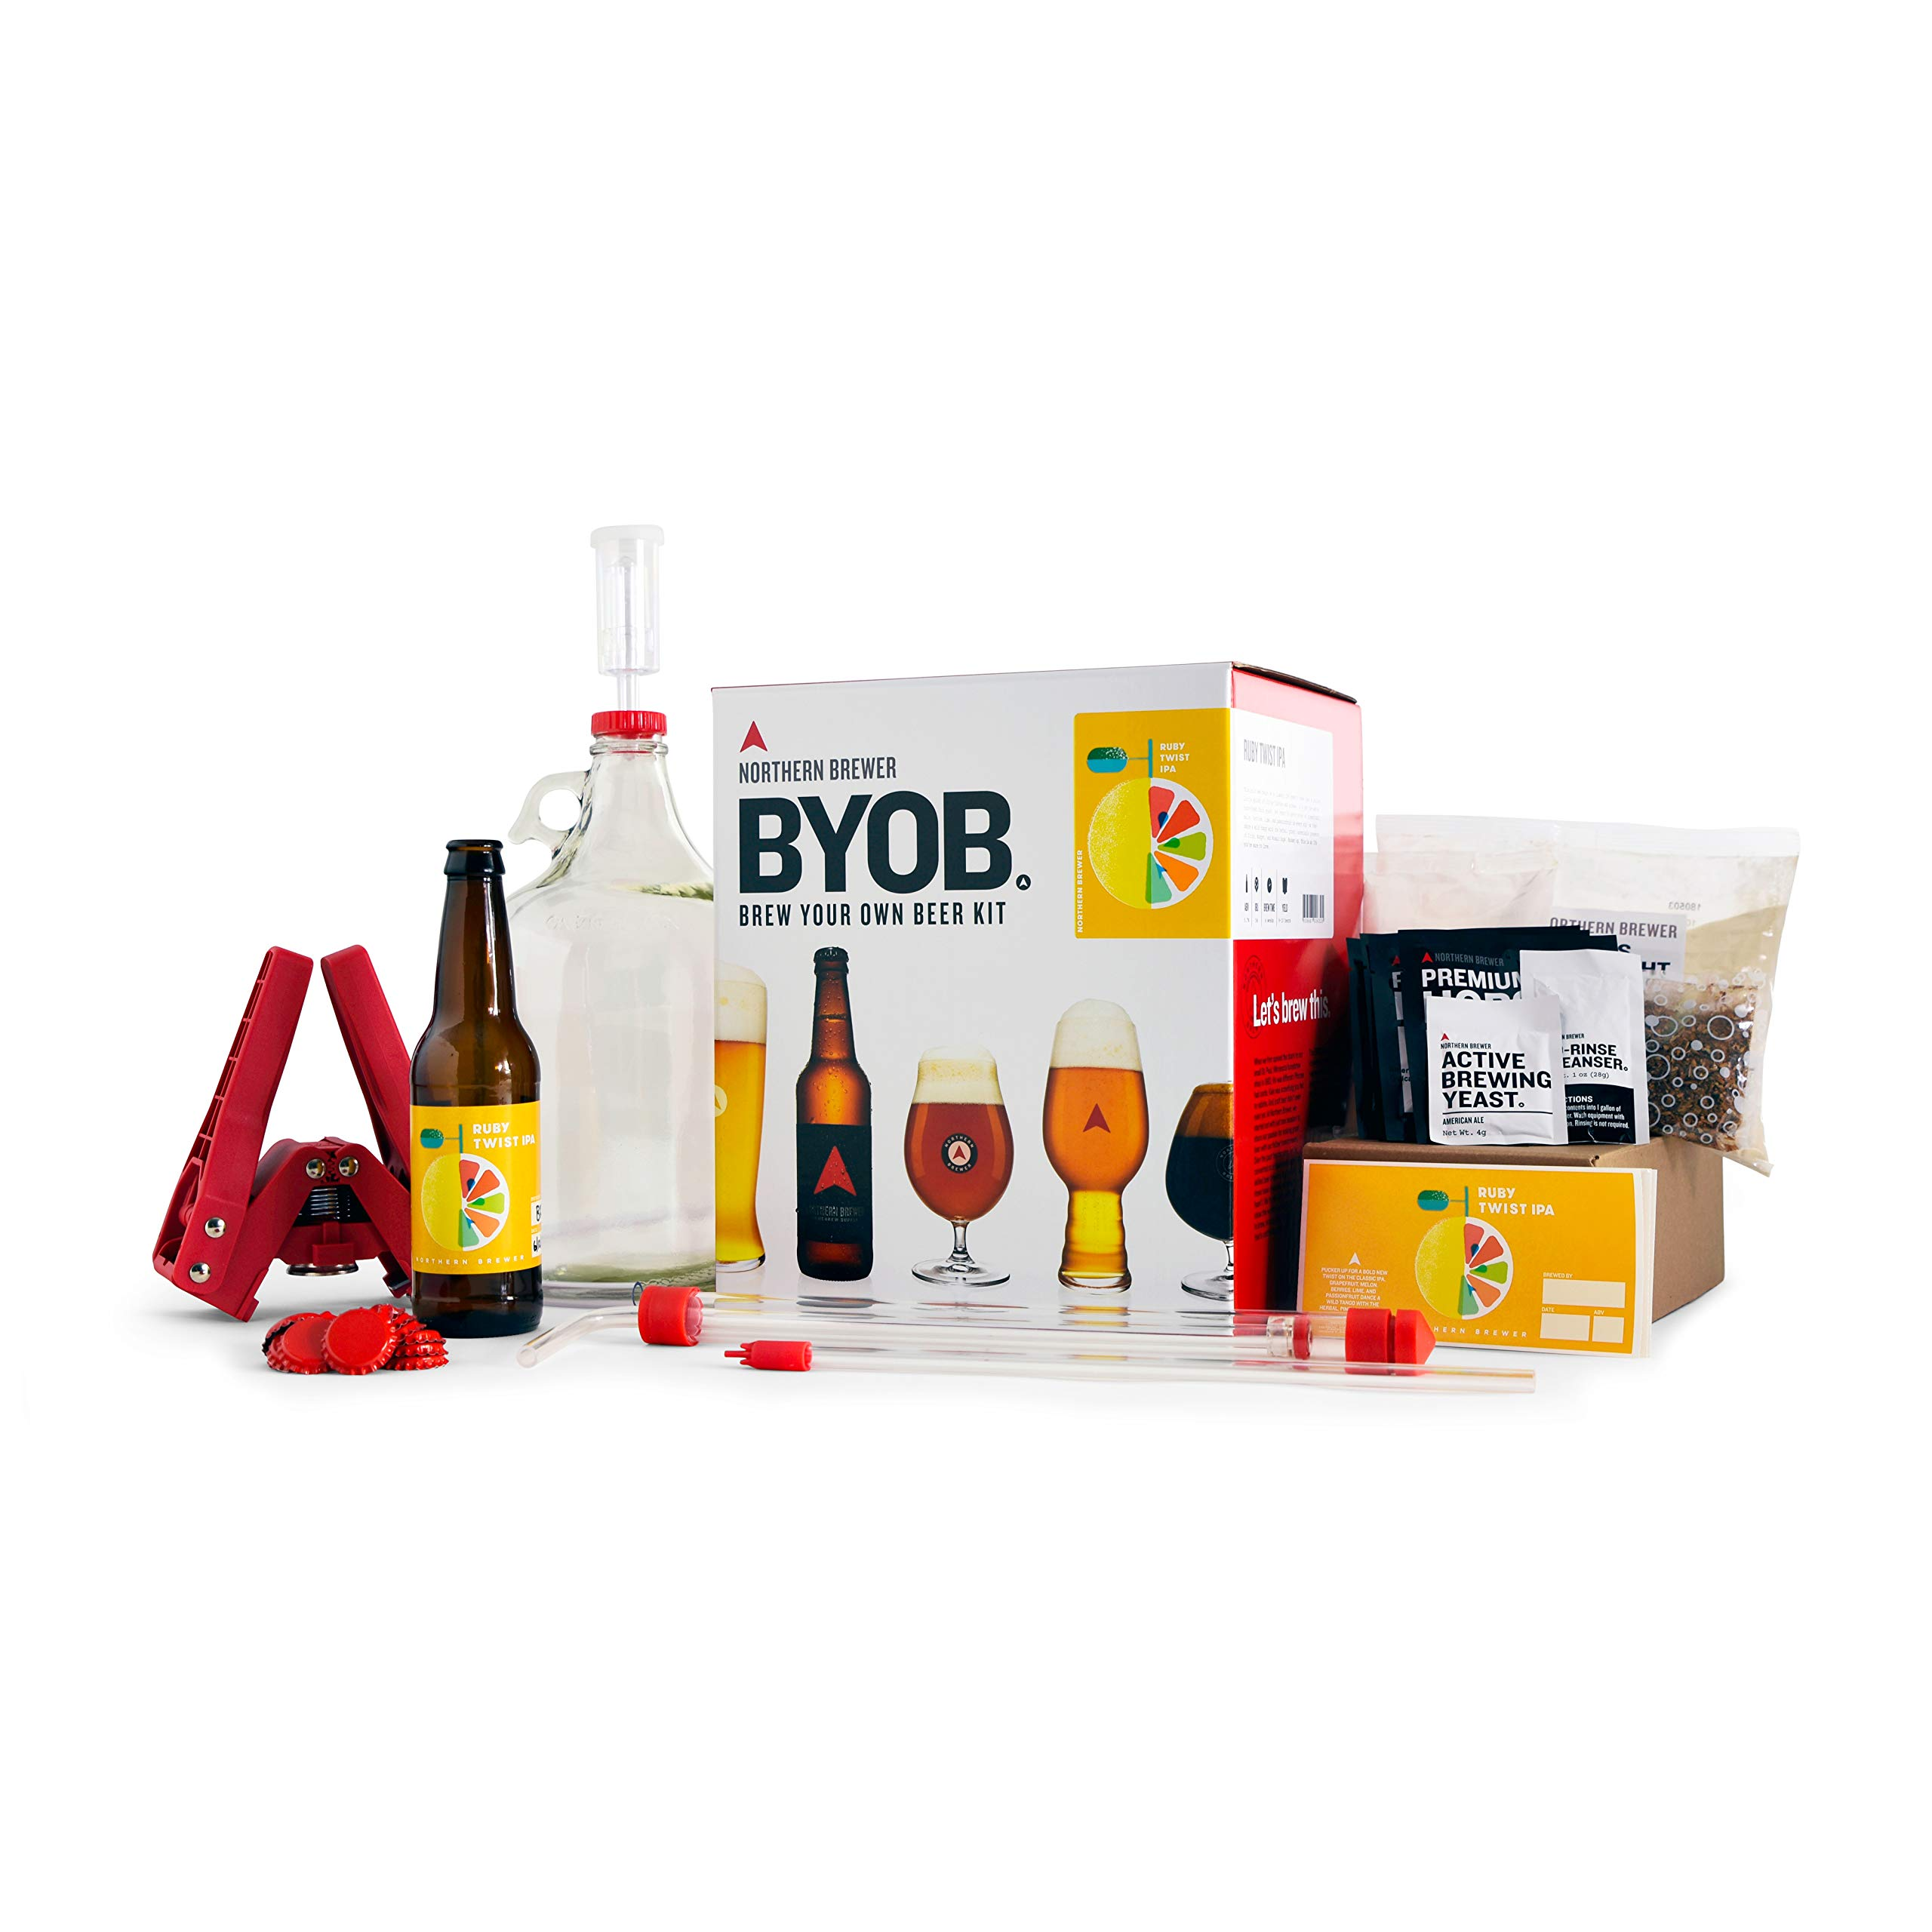 BYOB by Northern Brewer - Brew Your Own Beer Home Beer Making Kit (Ruby Twist IPA)